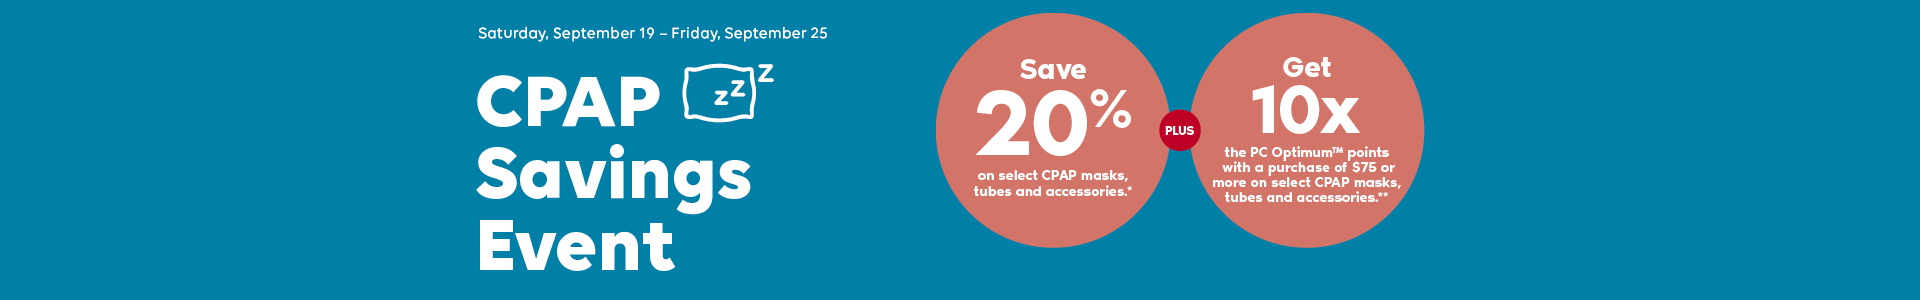 The CPAP Savings Event. Save 20% on select CPAP masks, tubes and accessories*. Plus, get 10x PC Optimum™ points when you spend $75 or more on CPAP masks, tubes and accessories**. Valid from Sept 19 to Sept 25, 2020. Promo code: CPAPWEEK